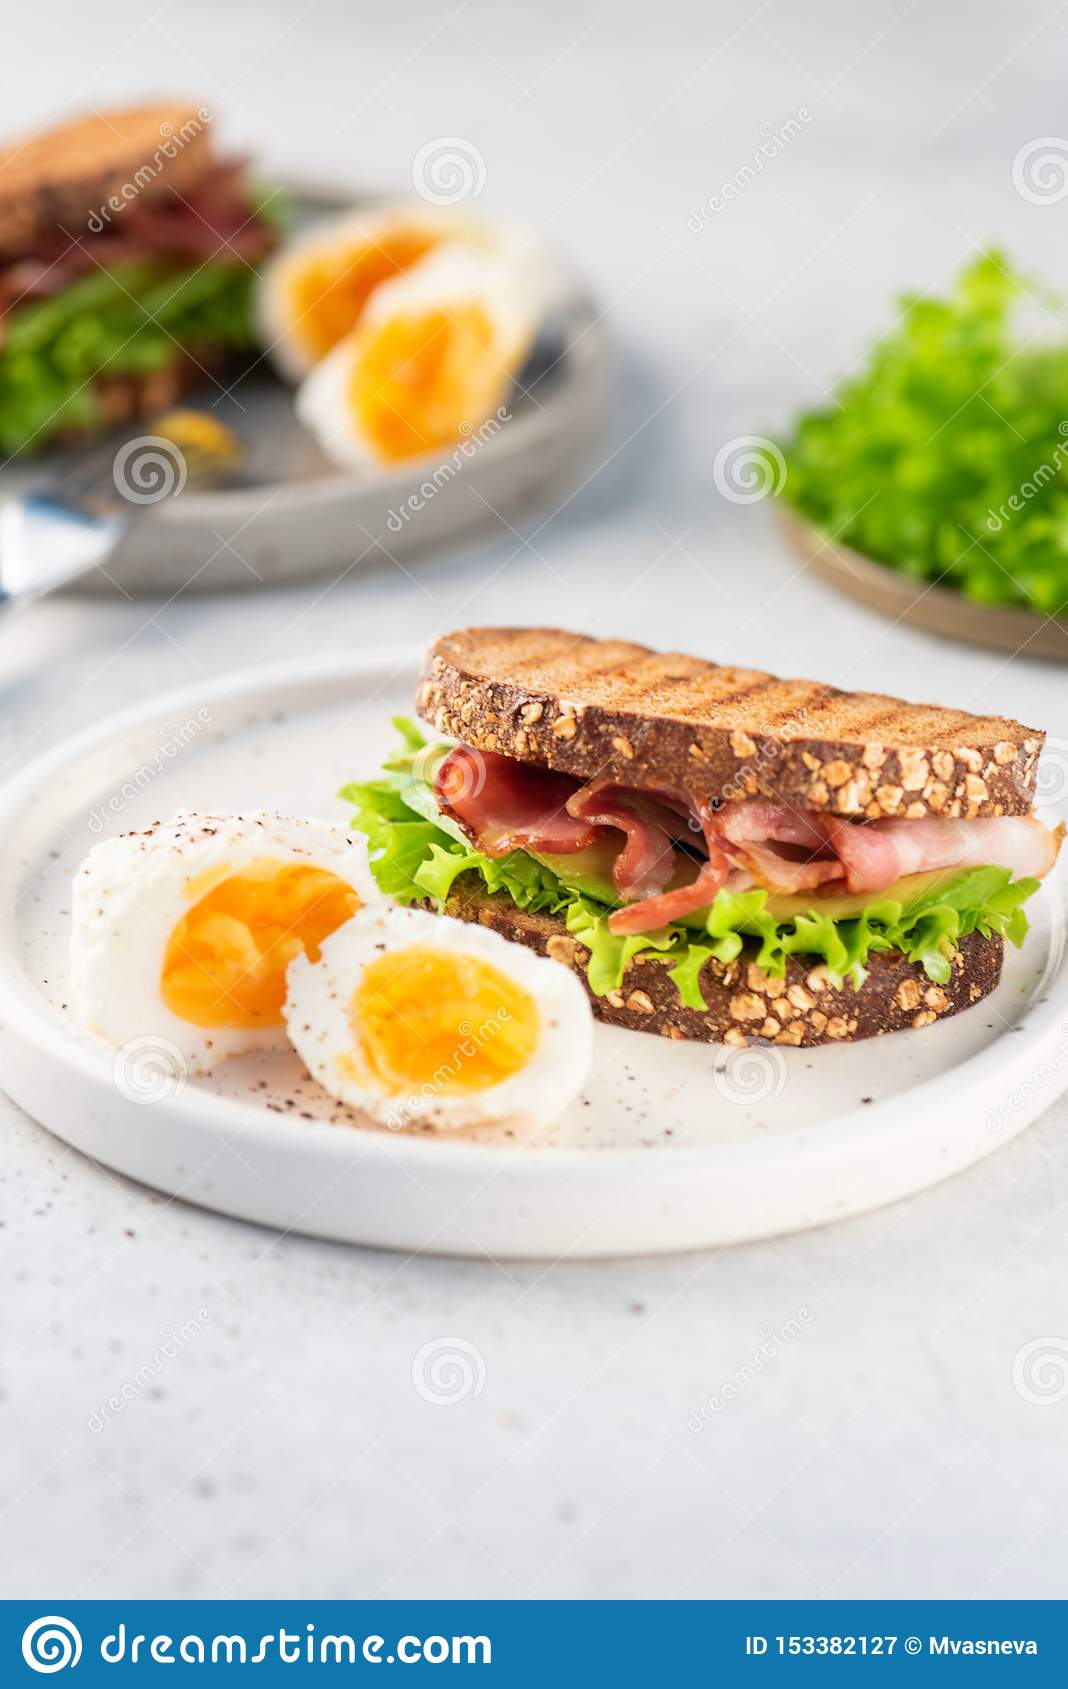 Sandwich with bacon, black bread, salad on plate